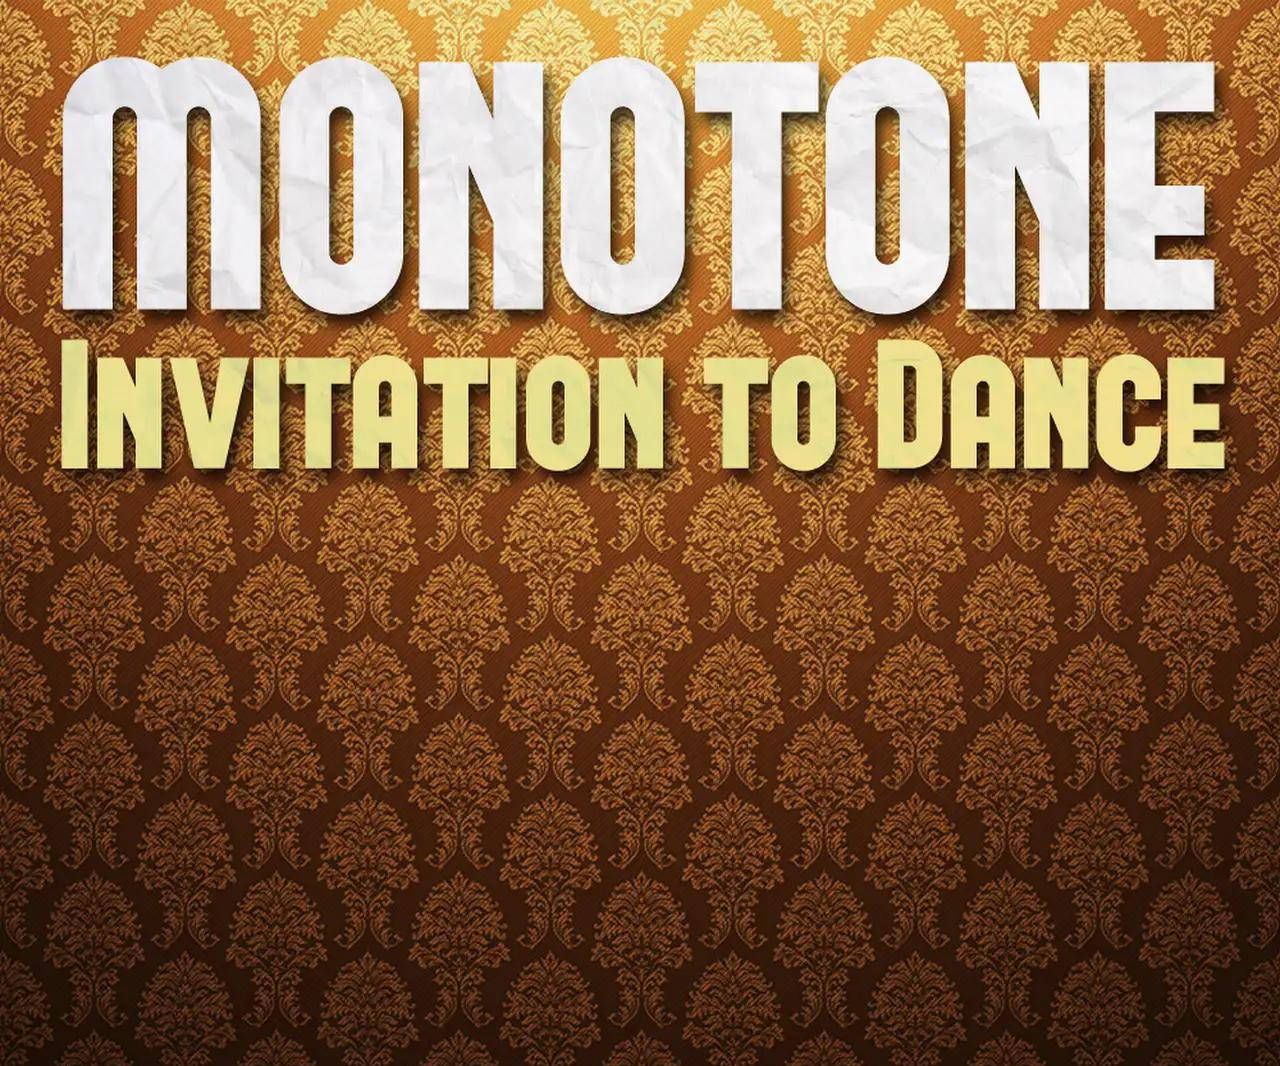 Monotone Ruby Gold Invitation Dance - Monotone Ft. Ruby Gold – Invitation Dance (Benediction's Dub Remix)